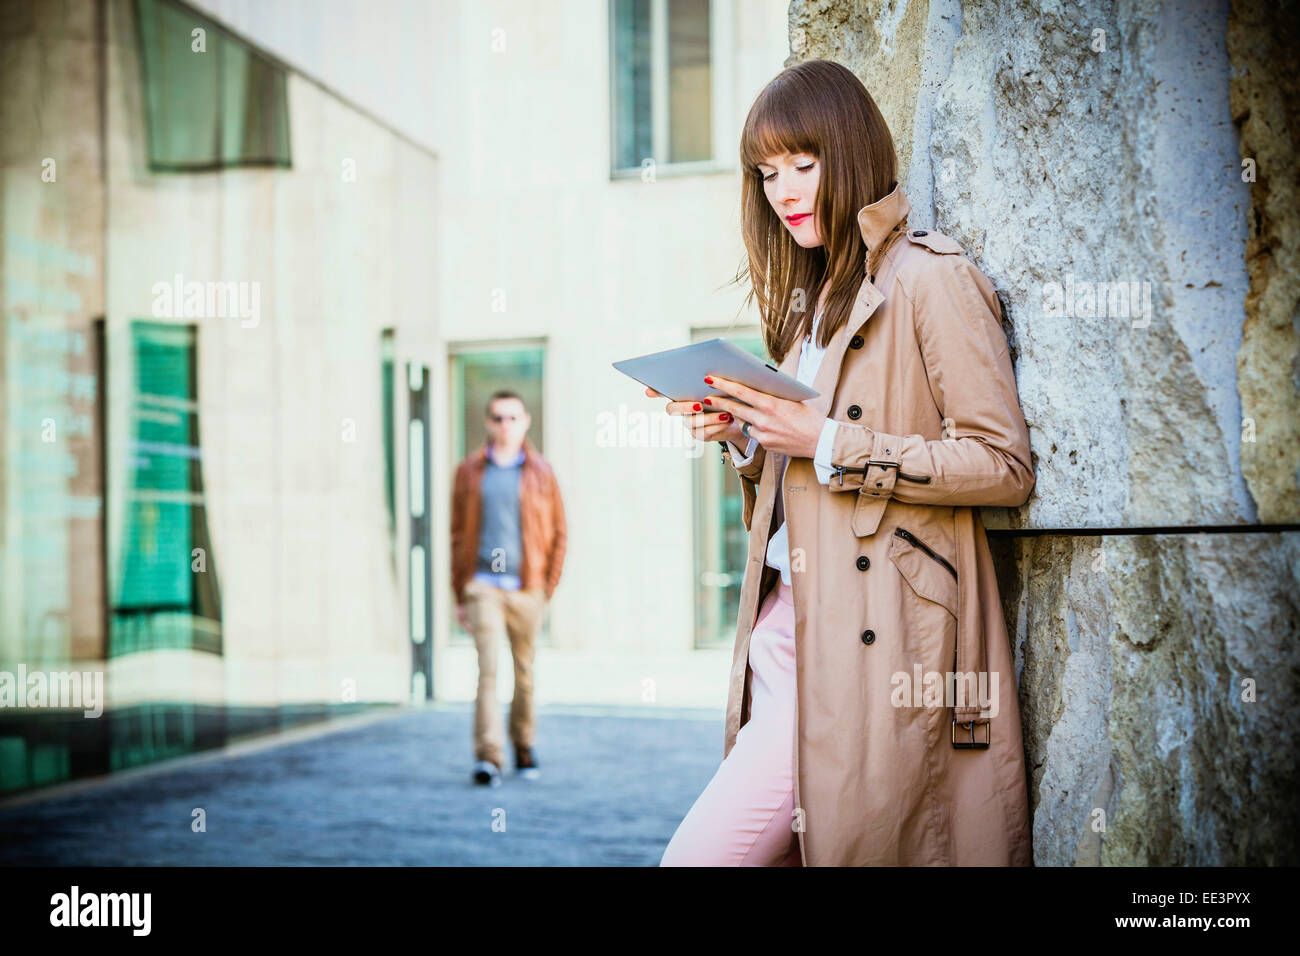 Young woman using digital tablet outdoors, Munich, Bavière, Allemagne Photo Stock